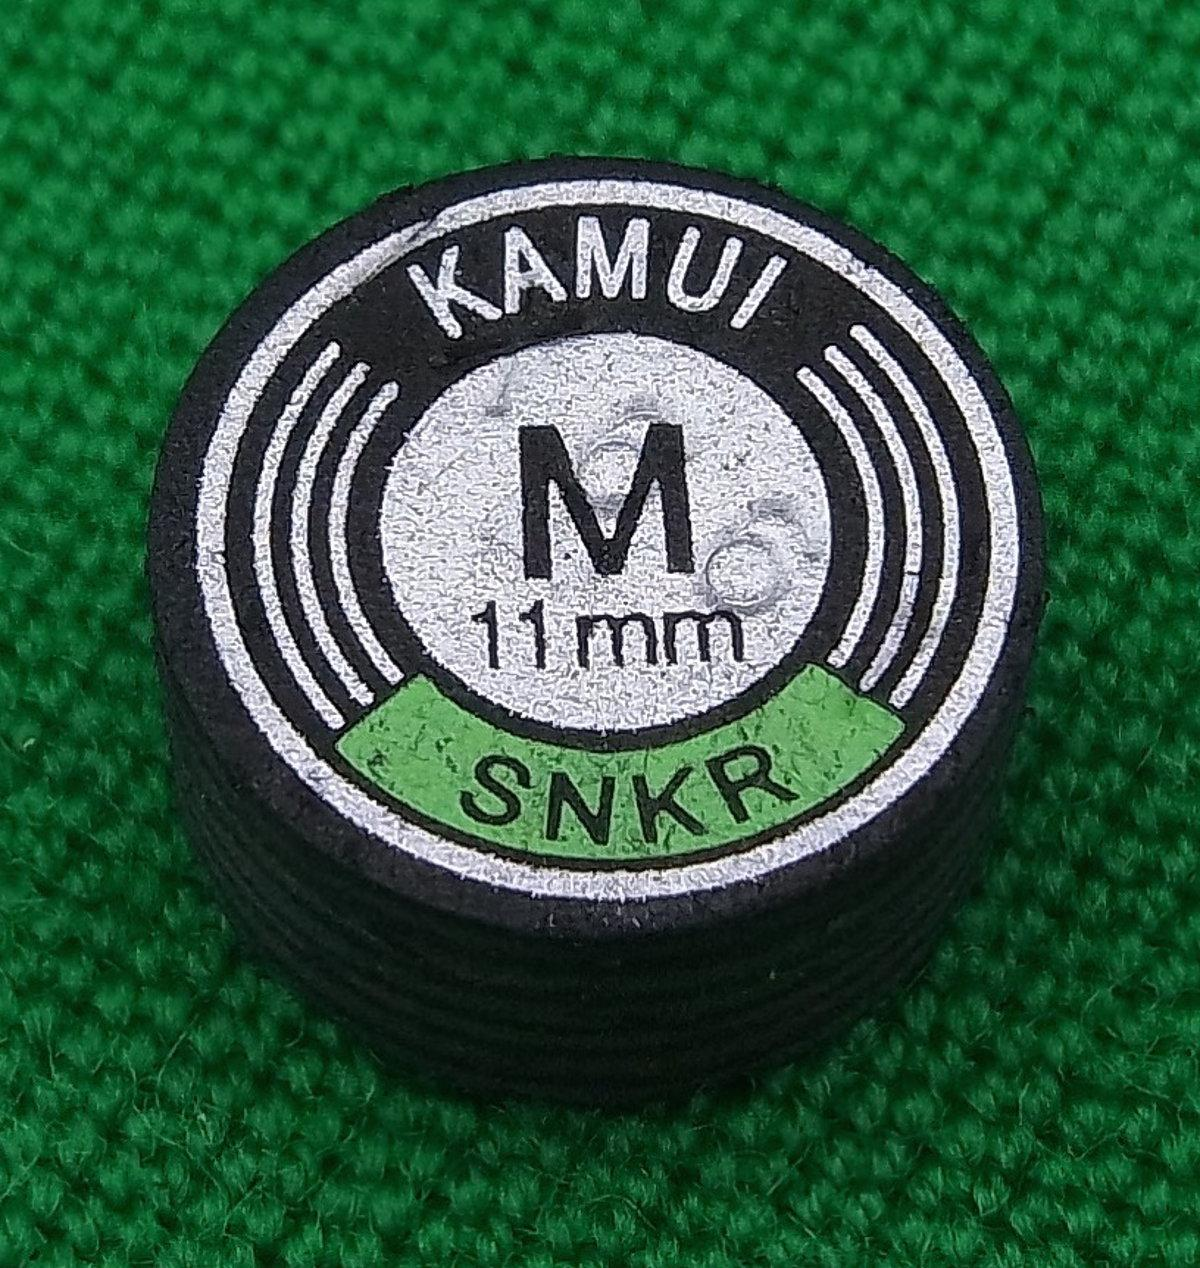 Kamui Black Snooker Tip (11mm, Medium)